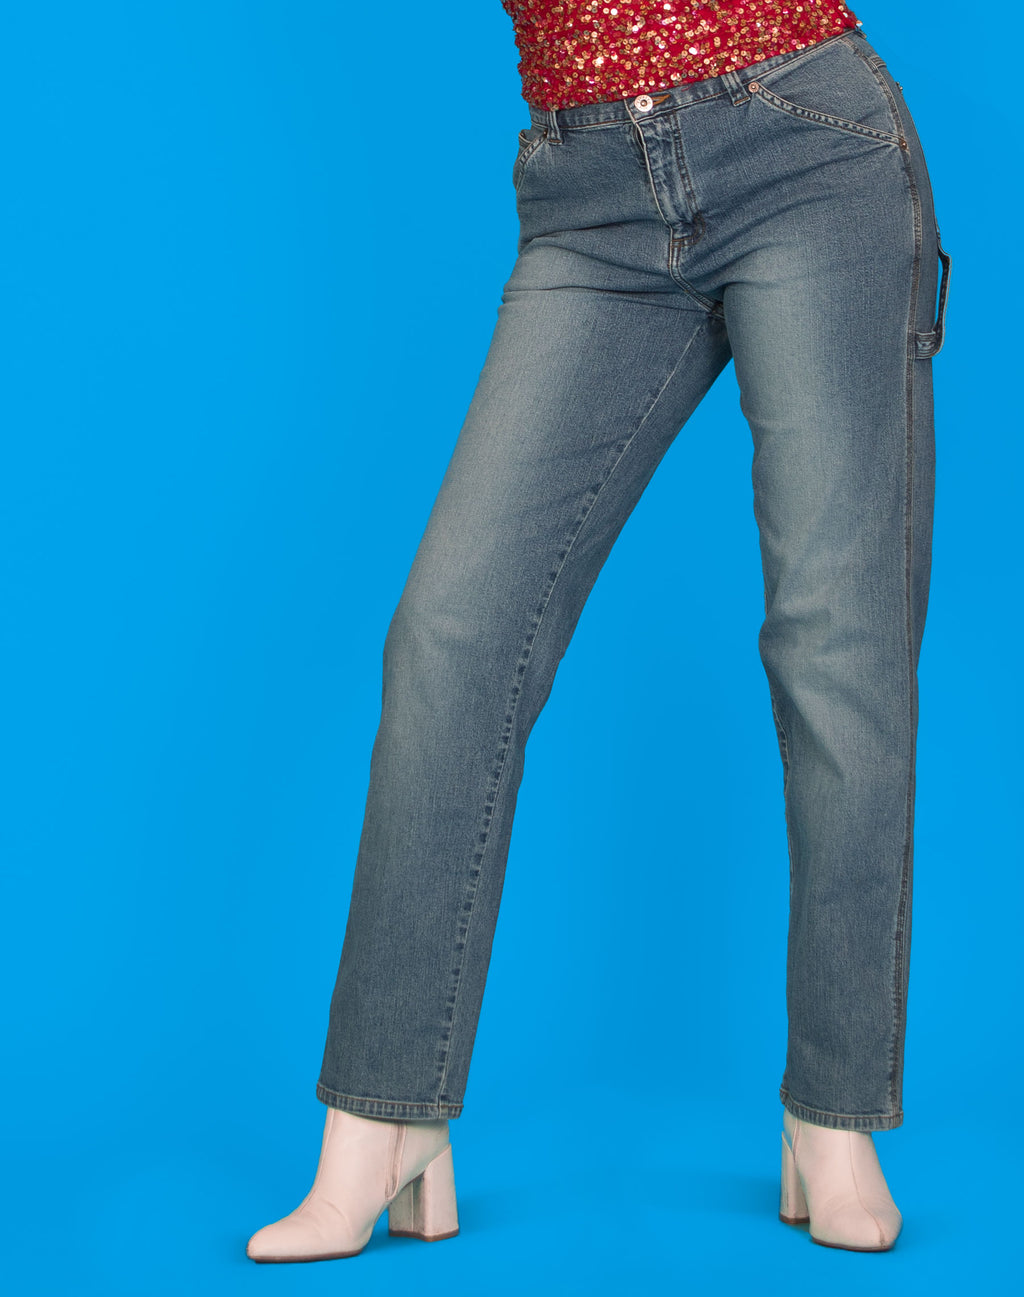 LEE LIGHT BLUE SKATER JEANS